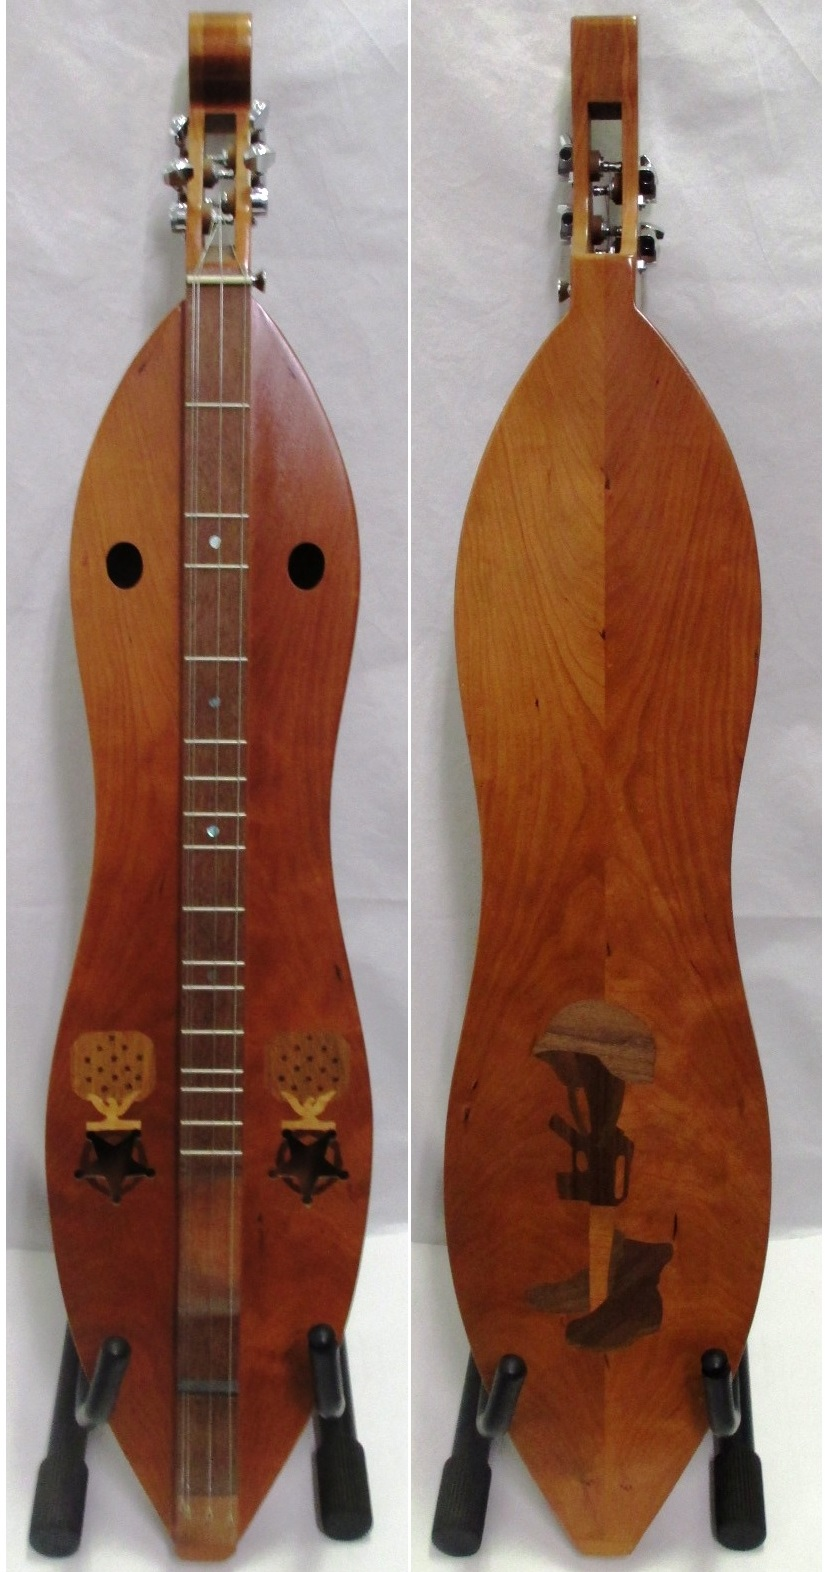 Arnold Military Dulcimer - Front and Back.jpg